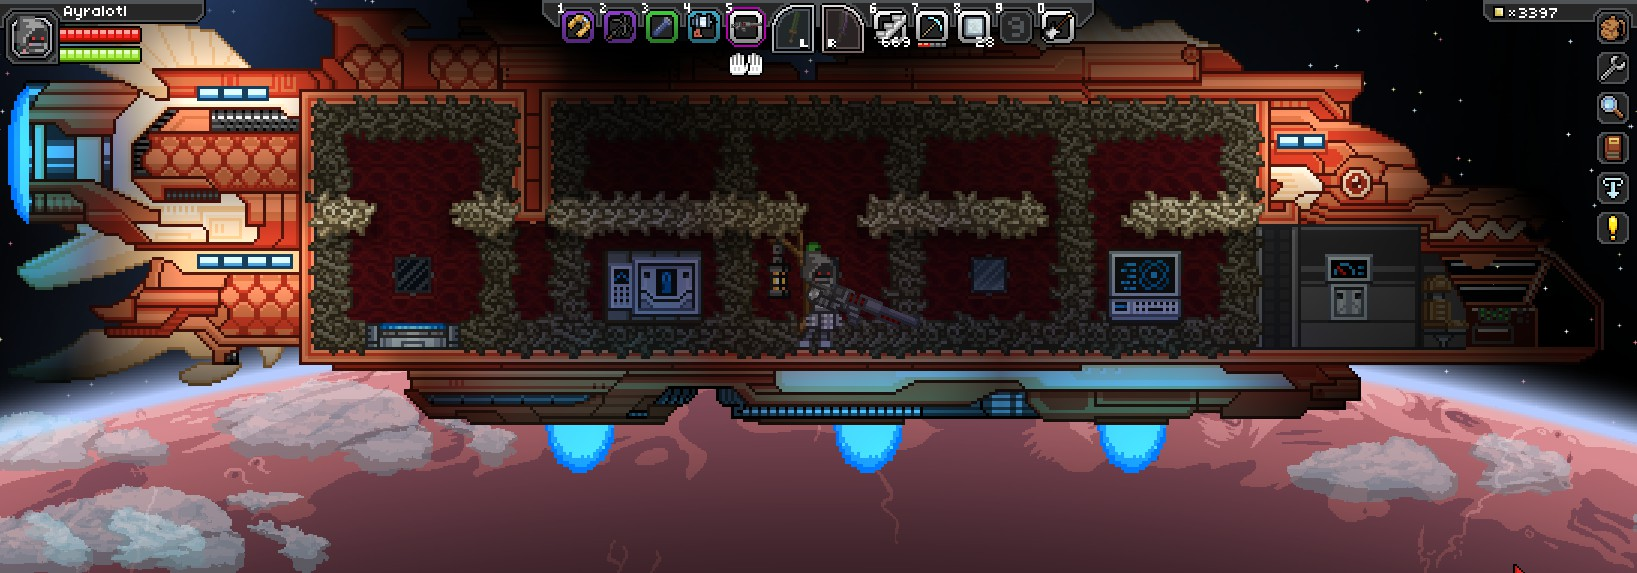 starbound how to find your friends